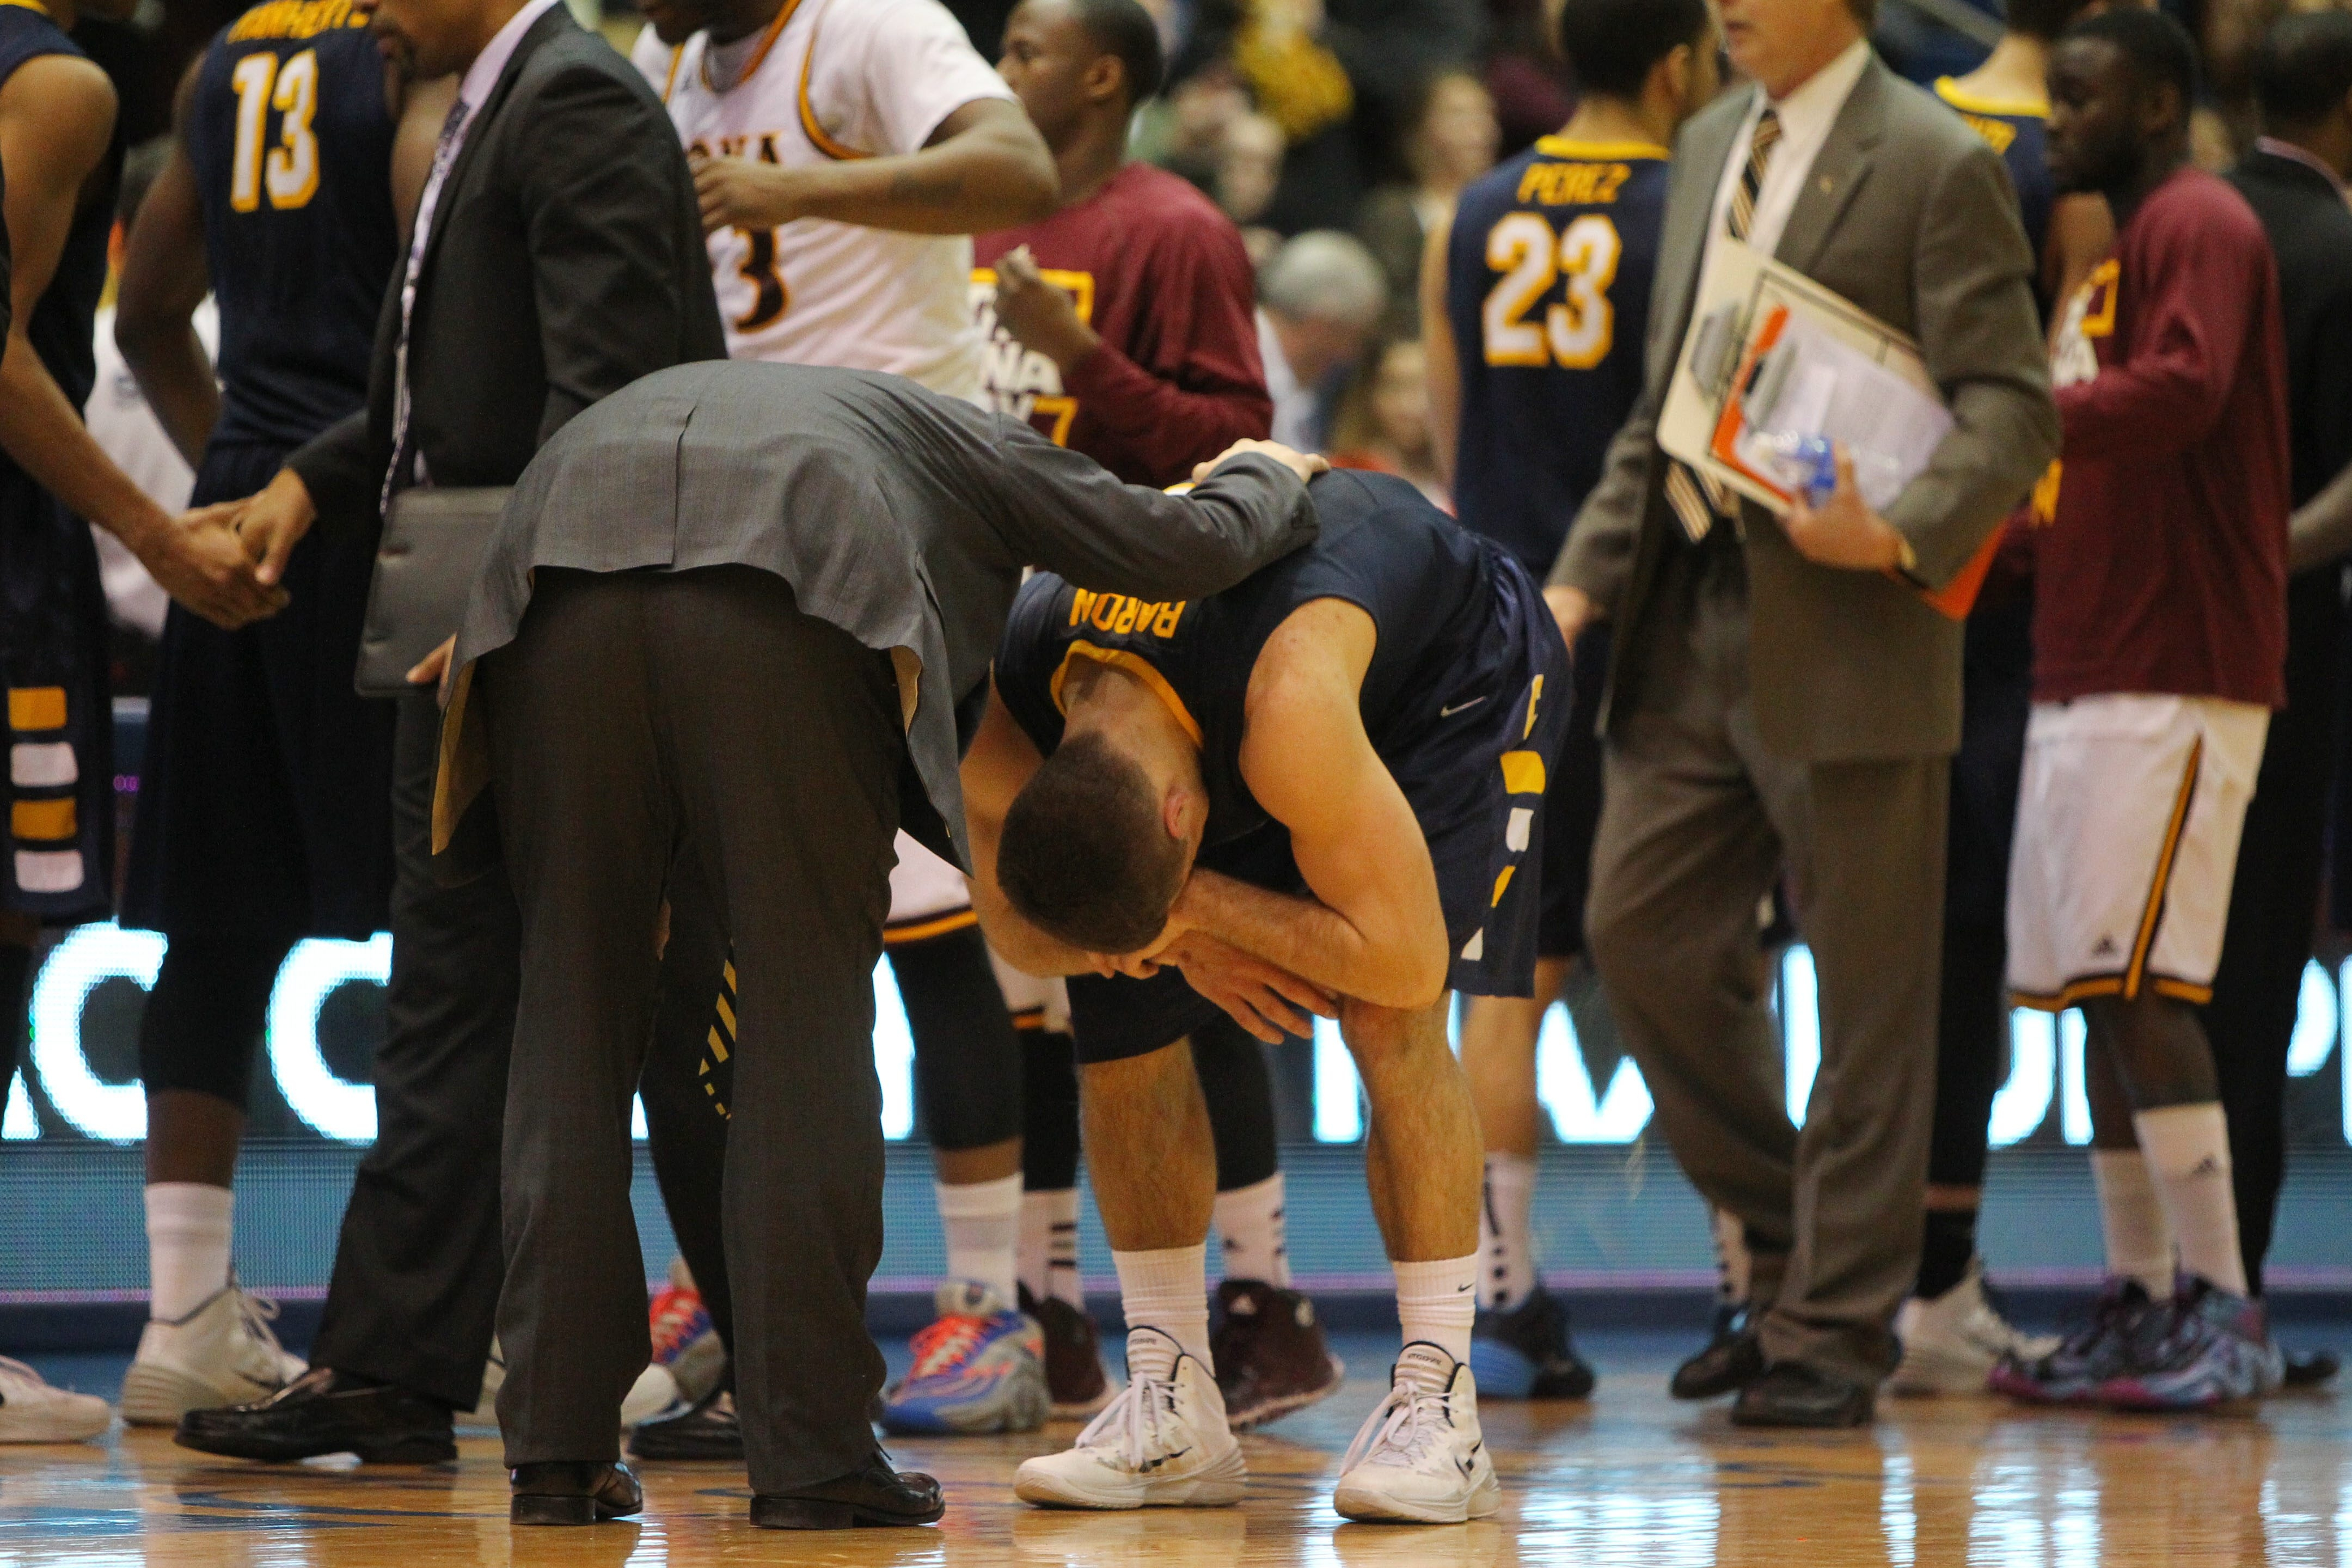 Canisius' Billy Baron is consoled by team manager Cory Macchioni after losing to Iona in Sunday's MAAC semifinal.